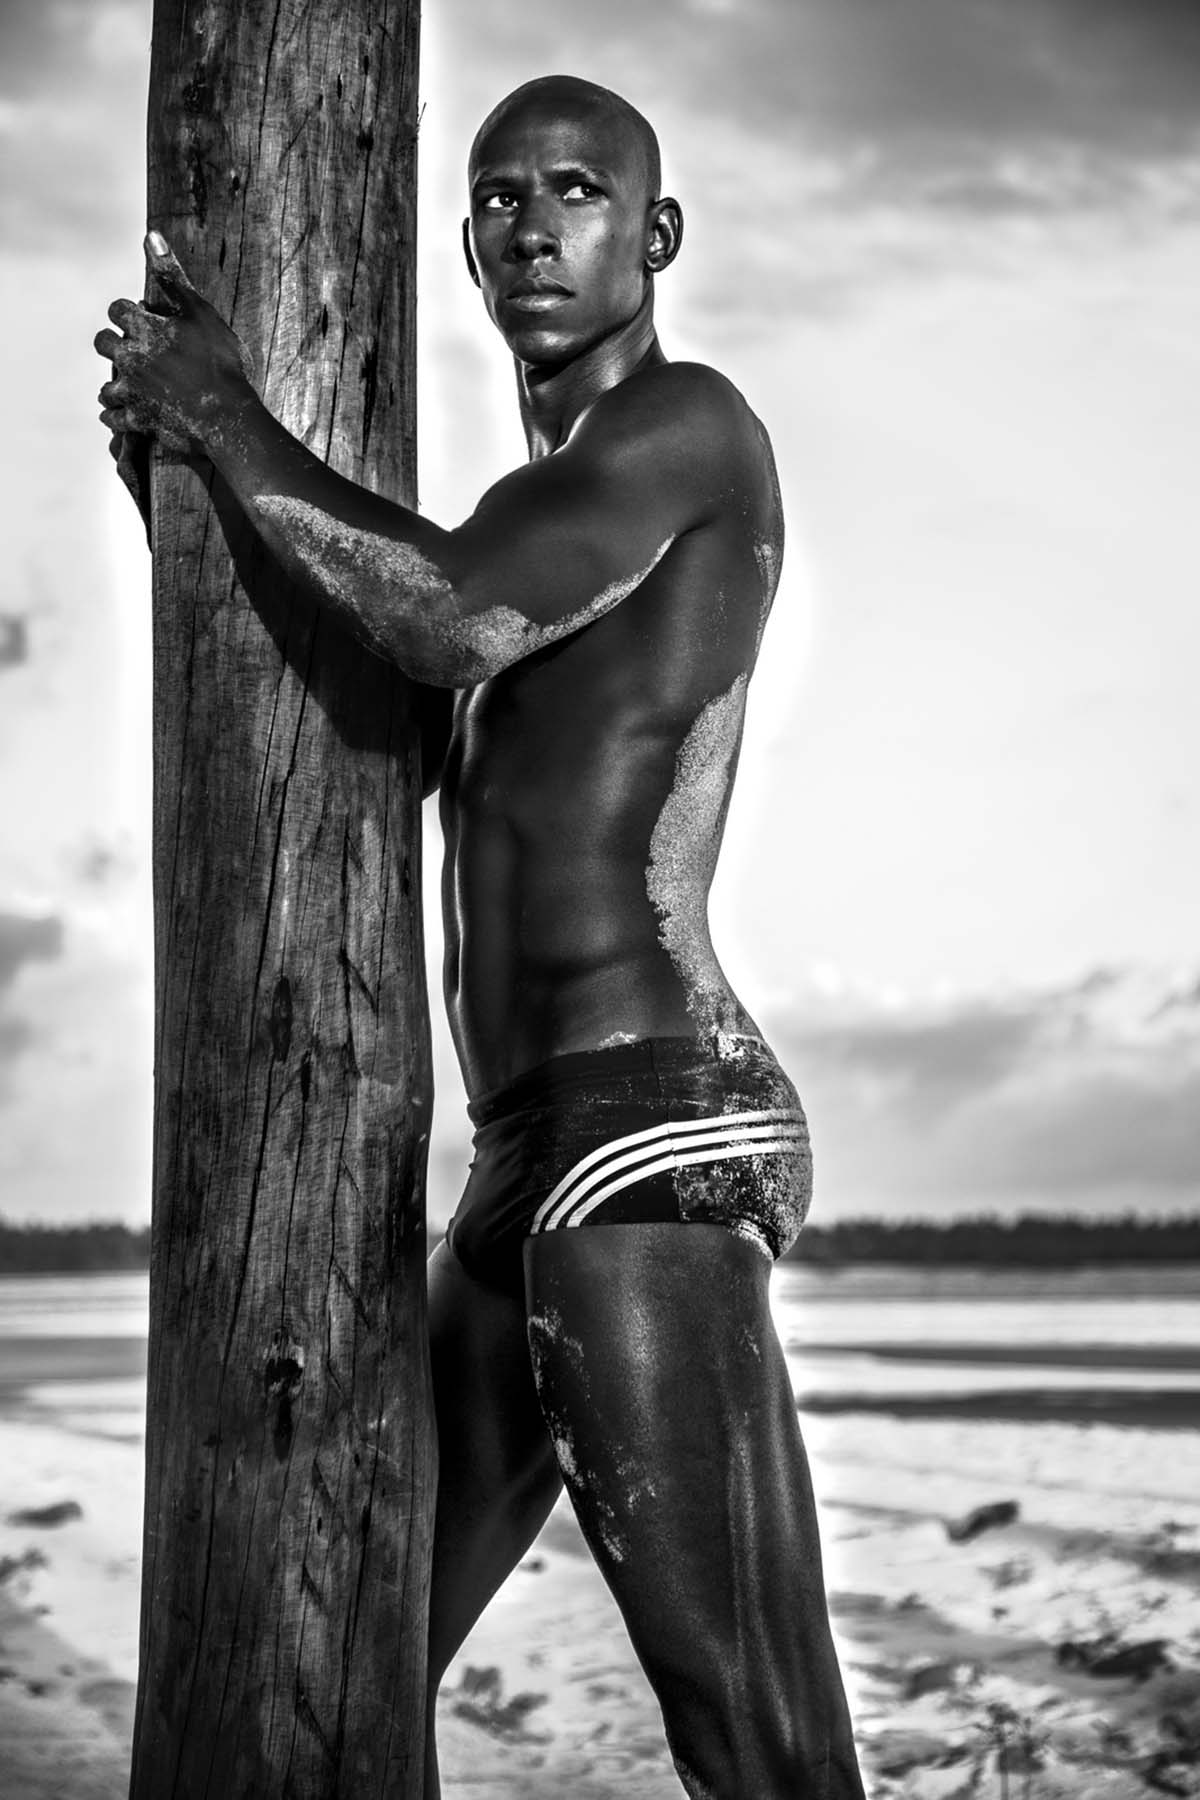 Vinicius Mendez by Fabio Pamplona for Brazilian Male Model